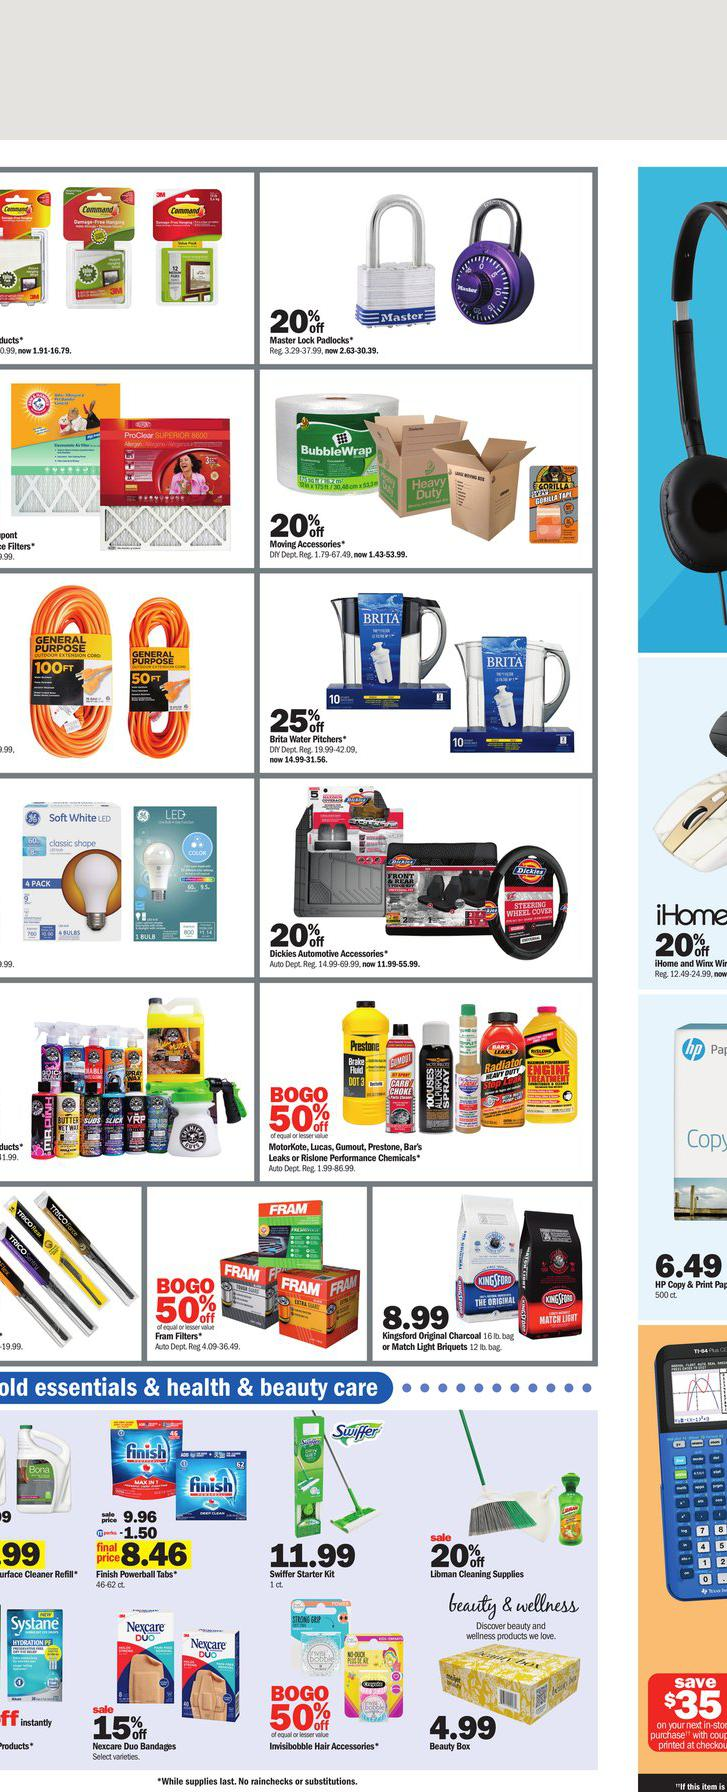 01.08.2021 Meijer ad 21. page